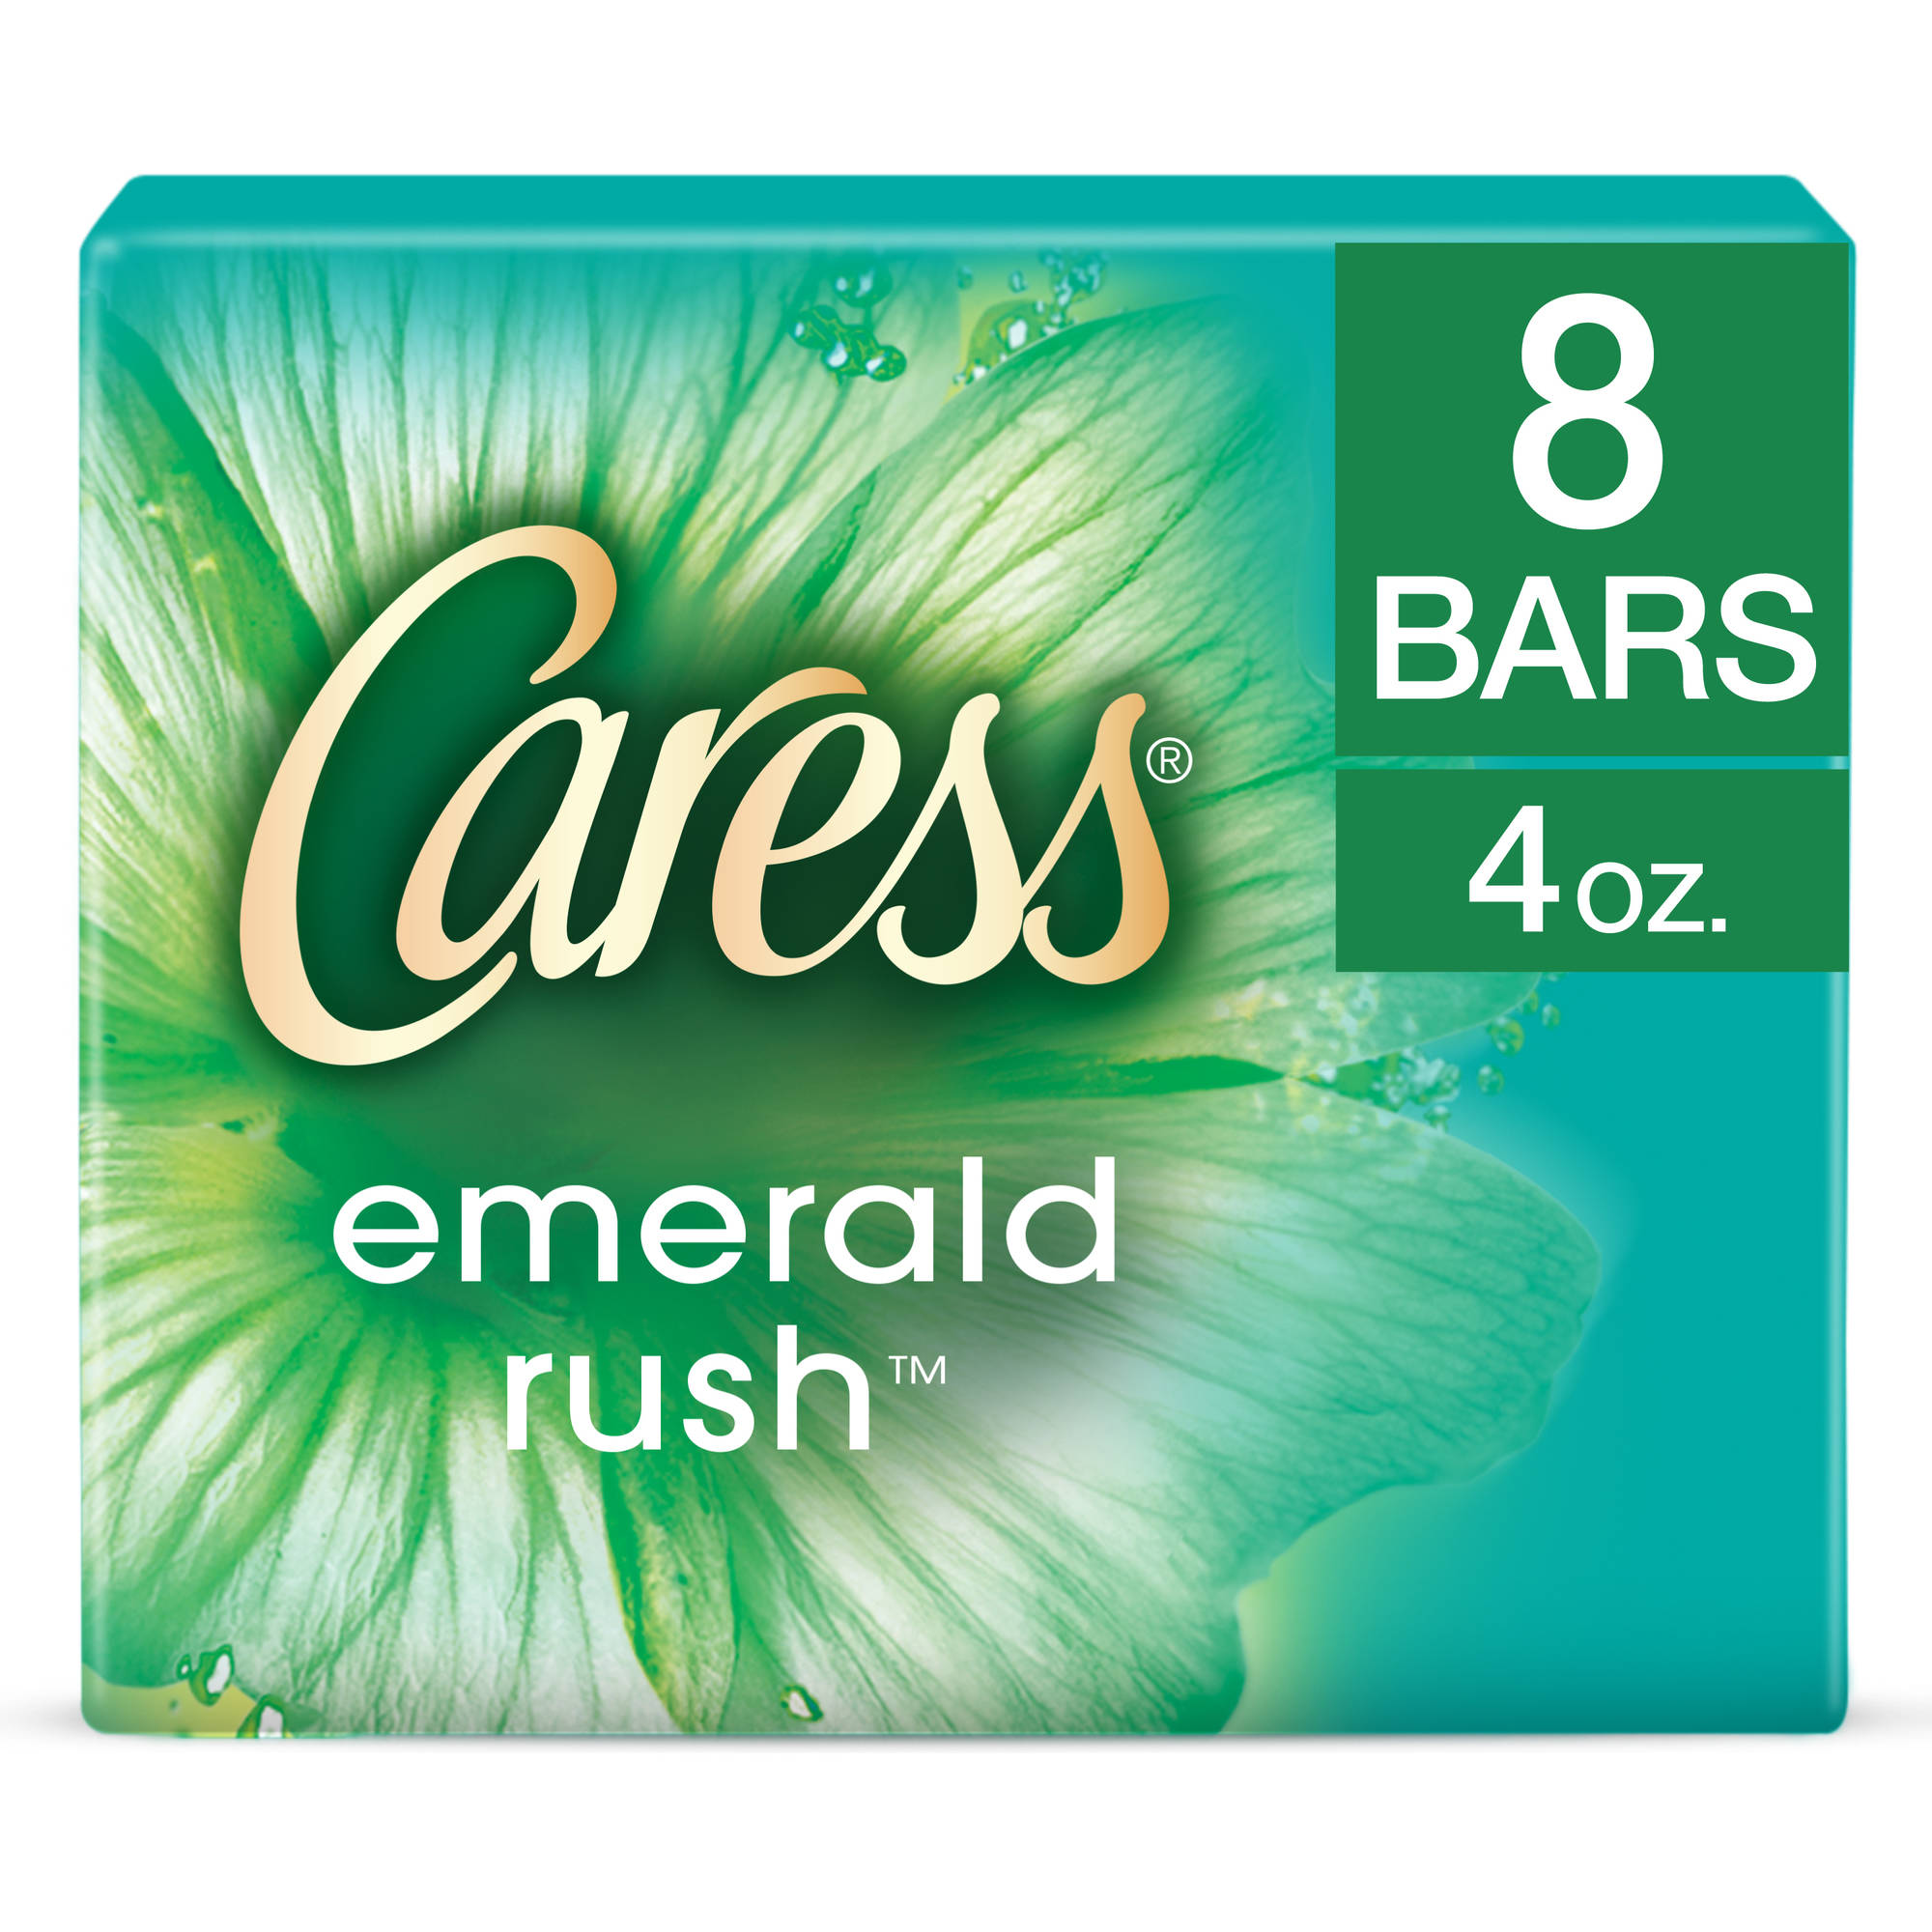 Caress Emerald Rush Beauty Bar, 4 oz, 8 Bar